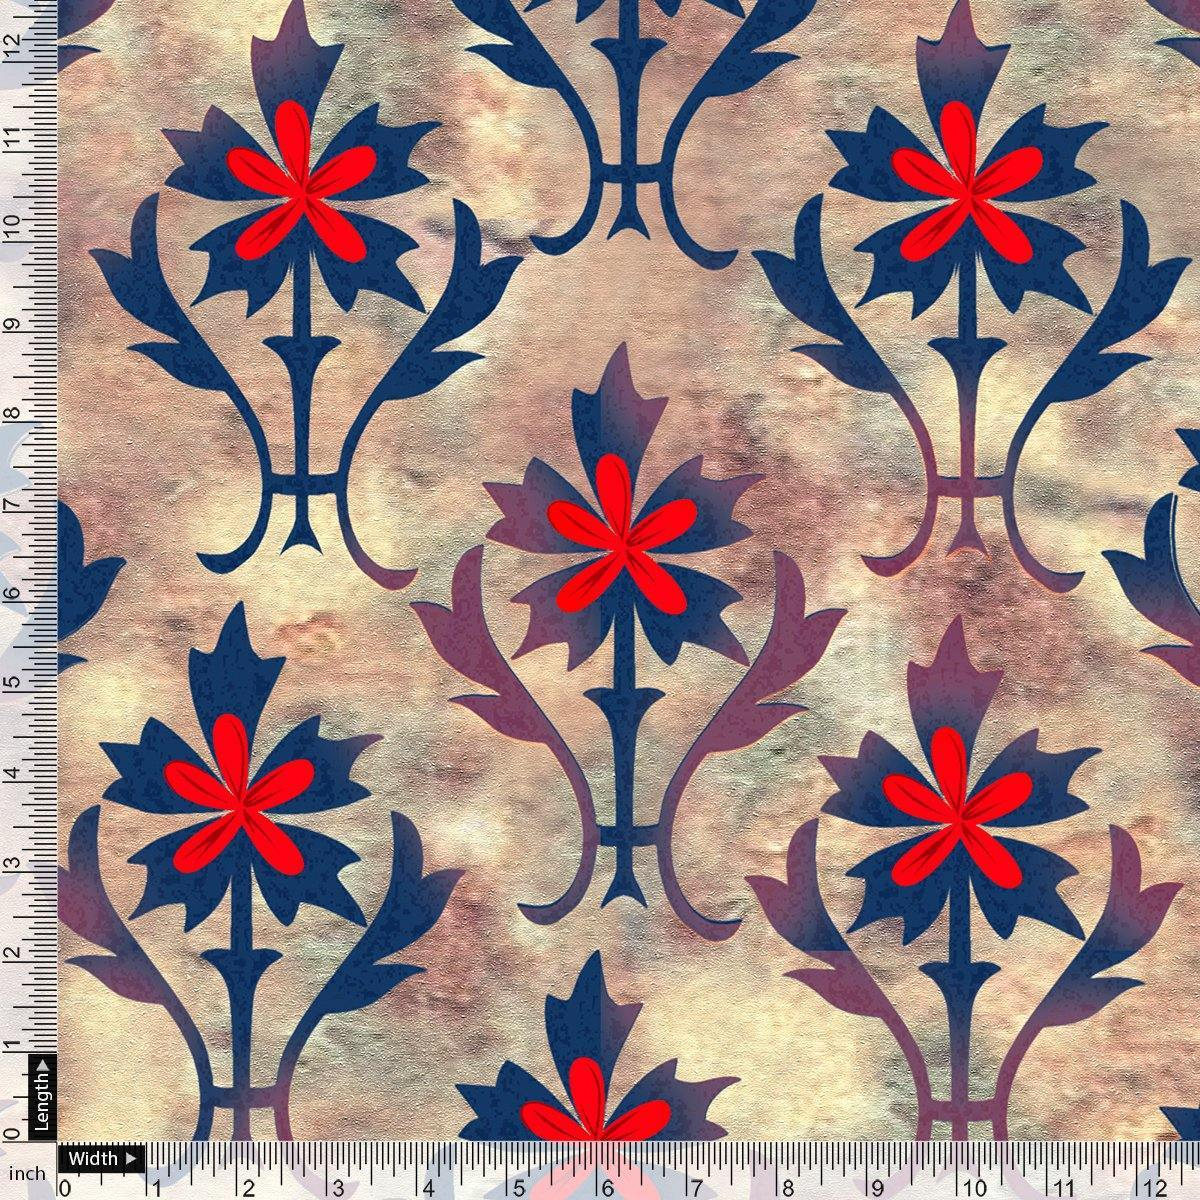 Maple Leaf Digital Printed Fabric - FAB VOGUE Studio. Shop Fabric @ www.fabvoguestudio.com